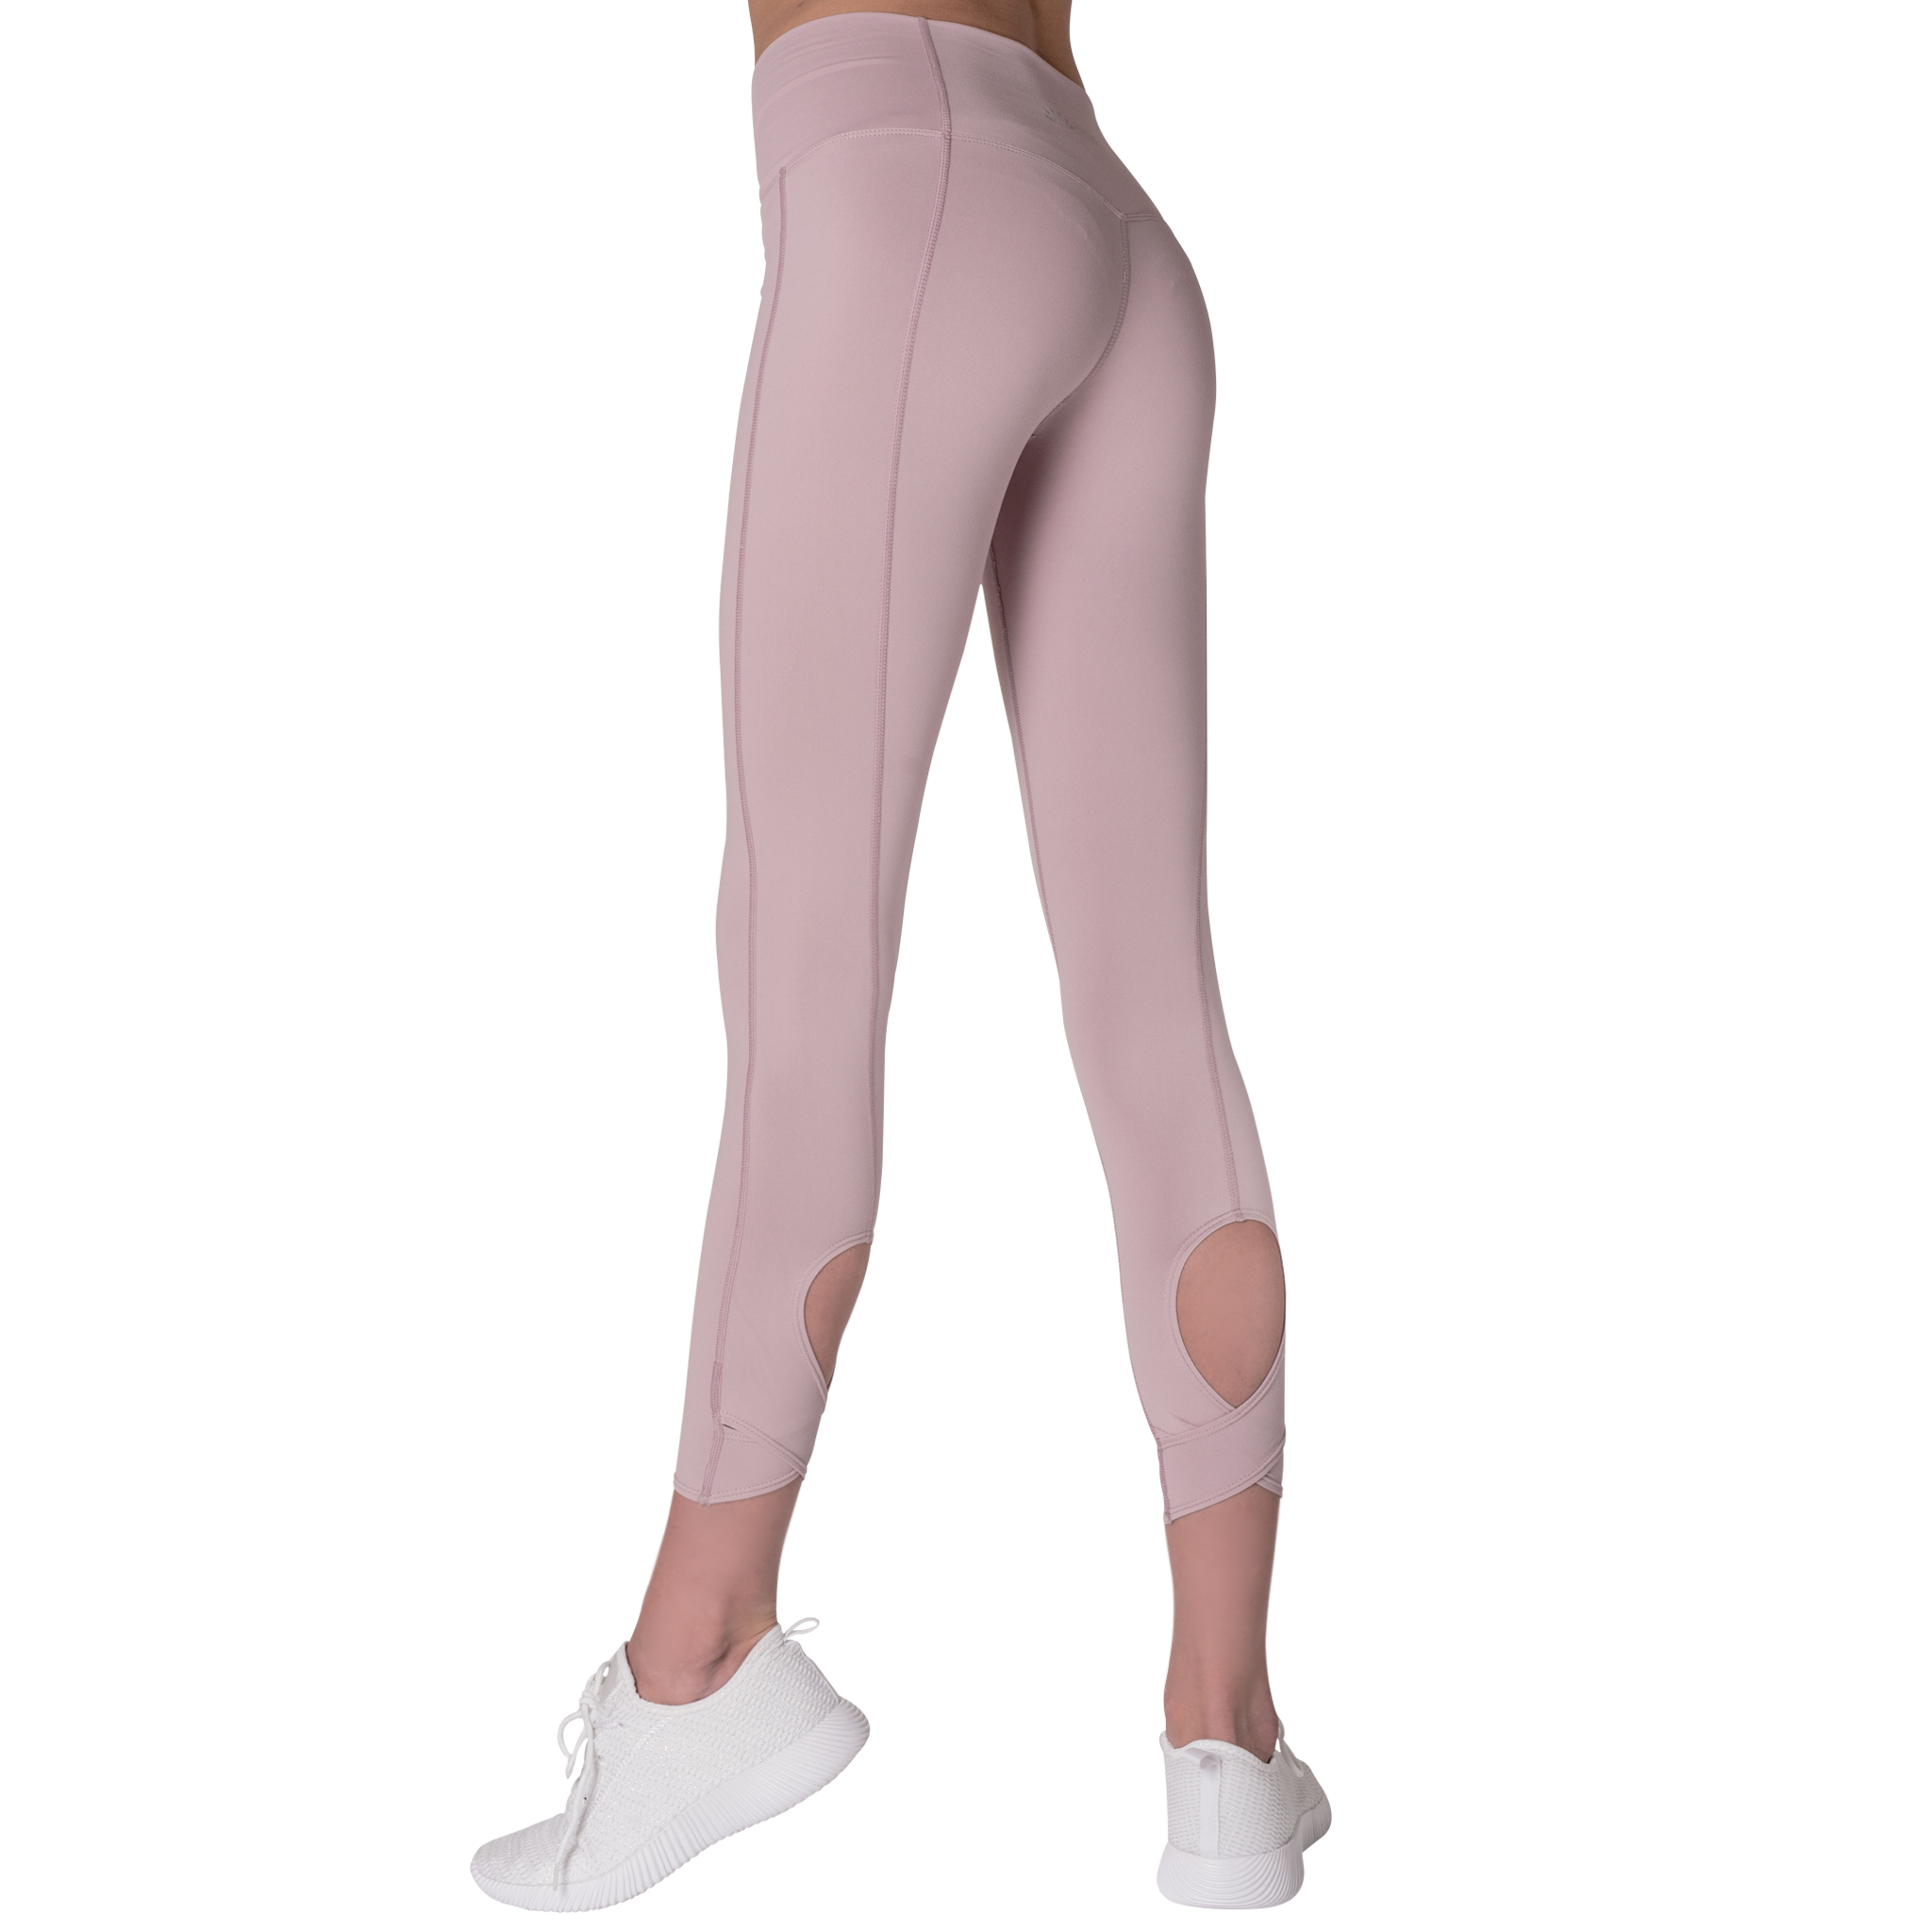 Back Side view FAYE leggings Purple colour fashionable high-rise leggings with soft compression Cool & Dry material.